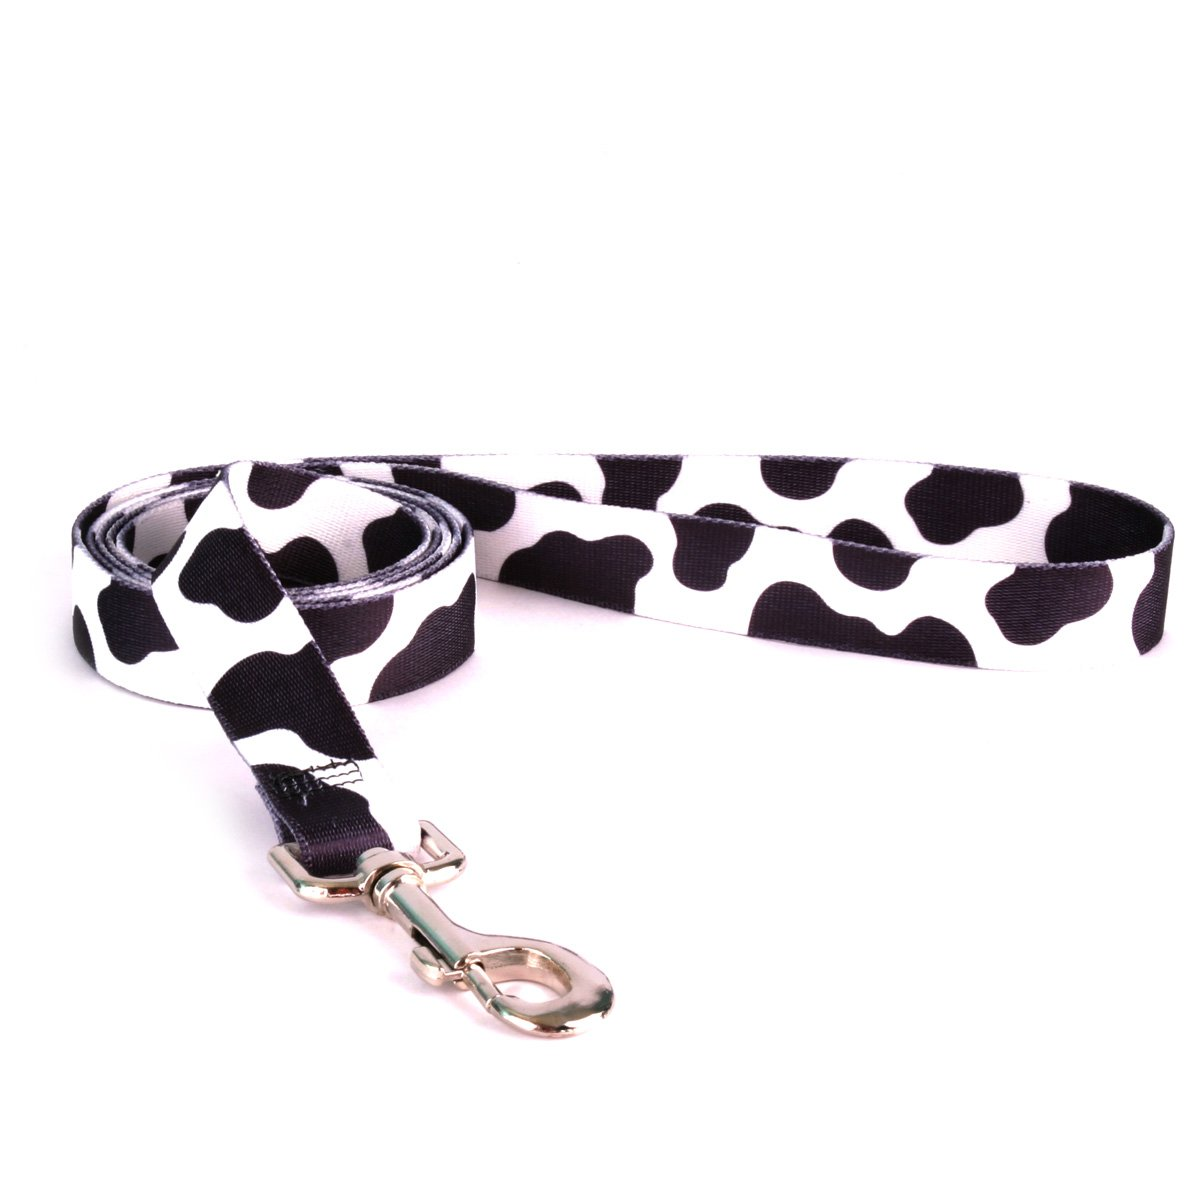 Yellow Dog Design Cow Dog Leash 1'' Wide And 5' (60'') Long, Large